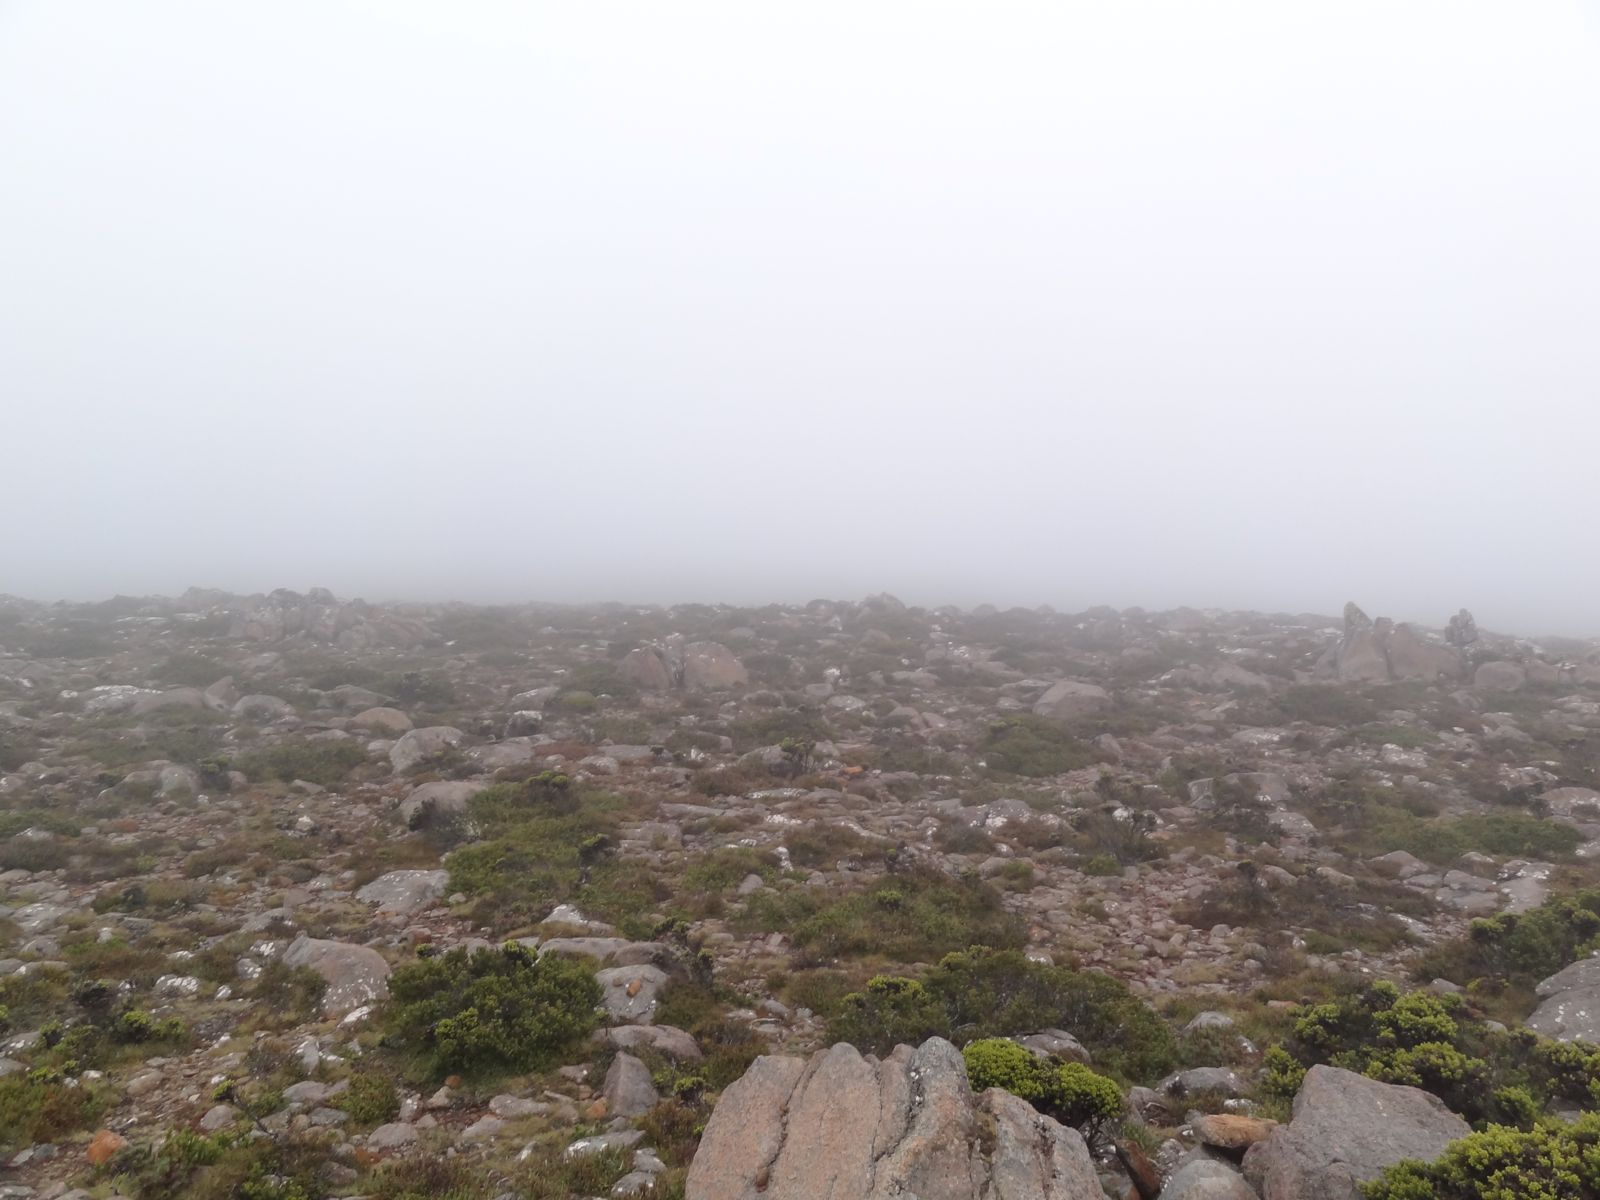 It was a nice day so drove up 1200m+ only to get caught in a rain storm...It dropped to 2 degrees!